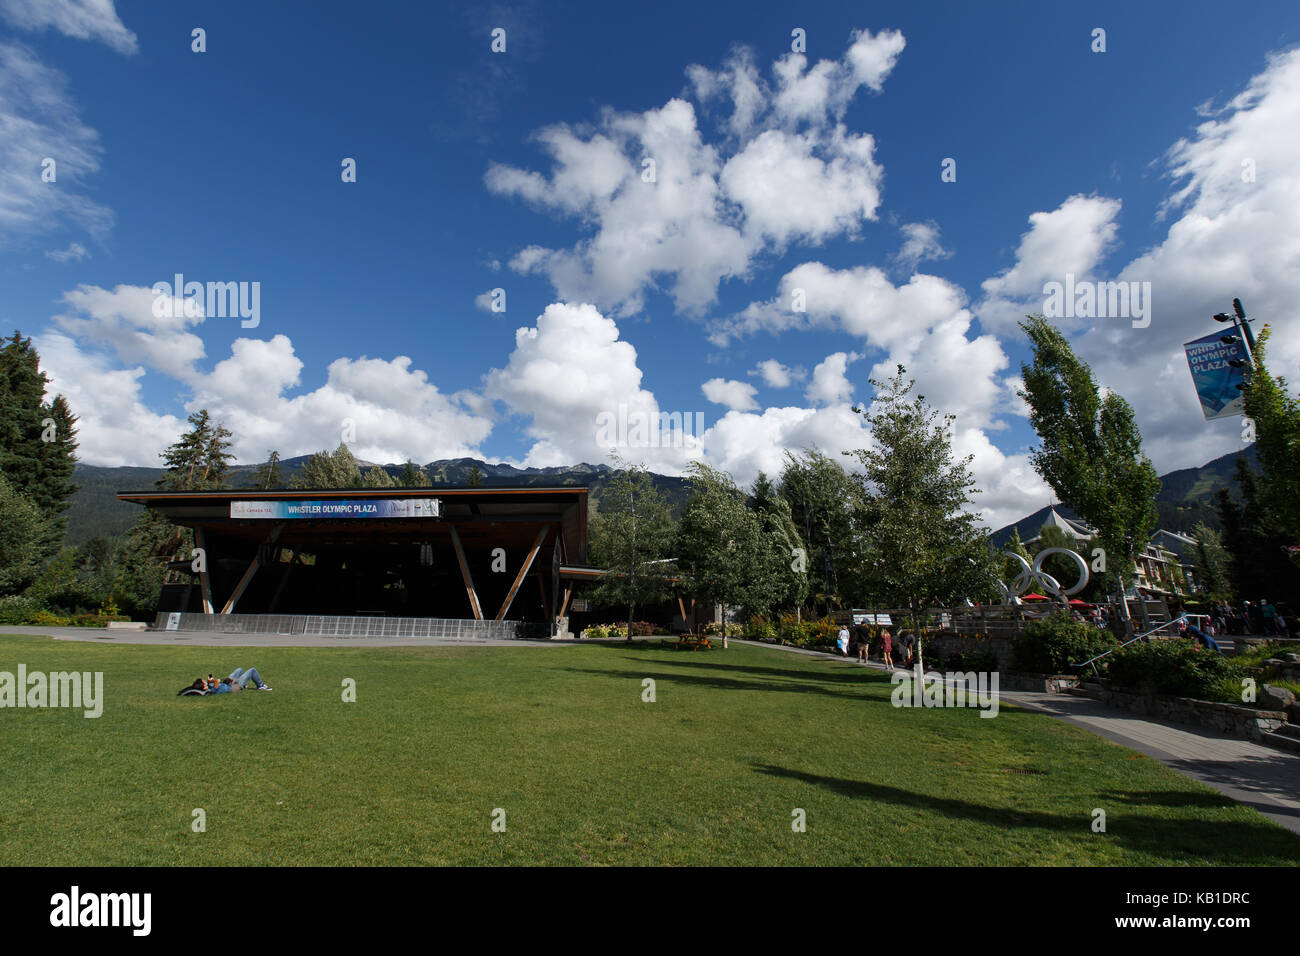 Olympic Plaza and the Olympic Rings  at Whistler Resort, British Columbia, Canada. Whistler, British Columbia. August - Stock Image